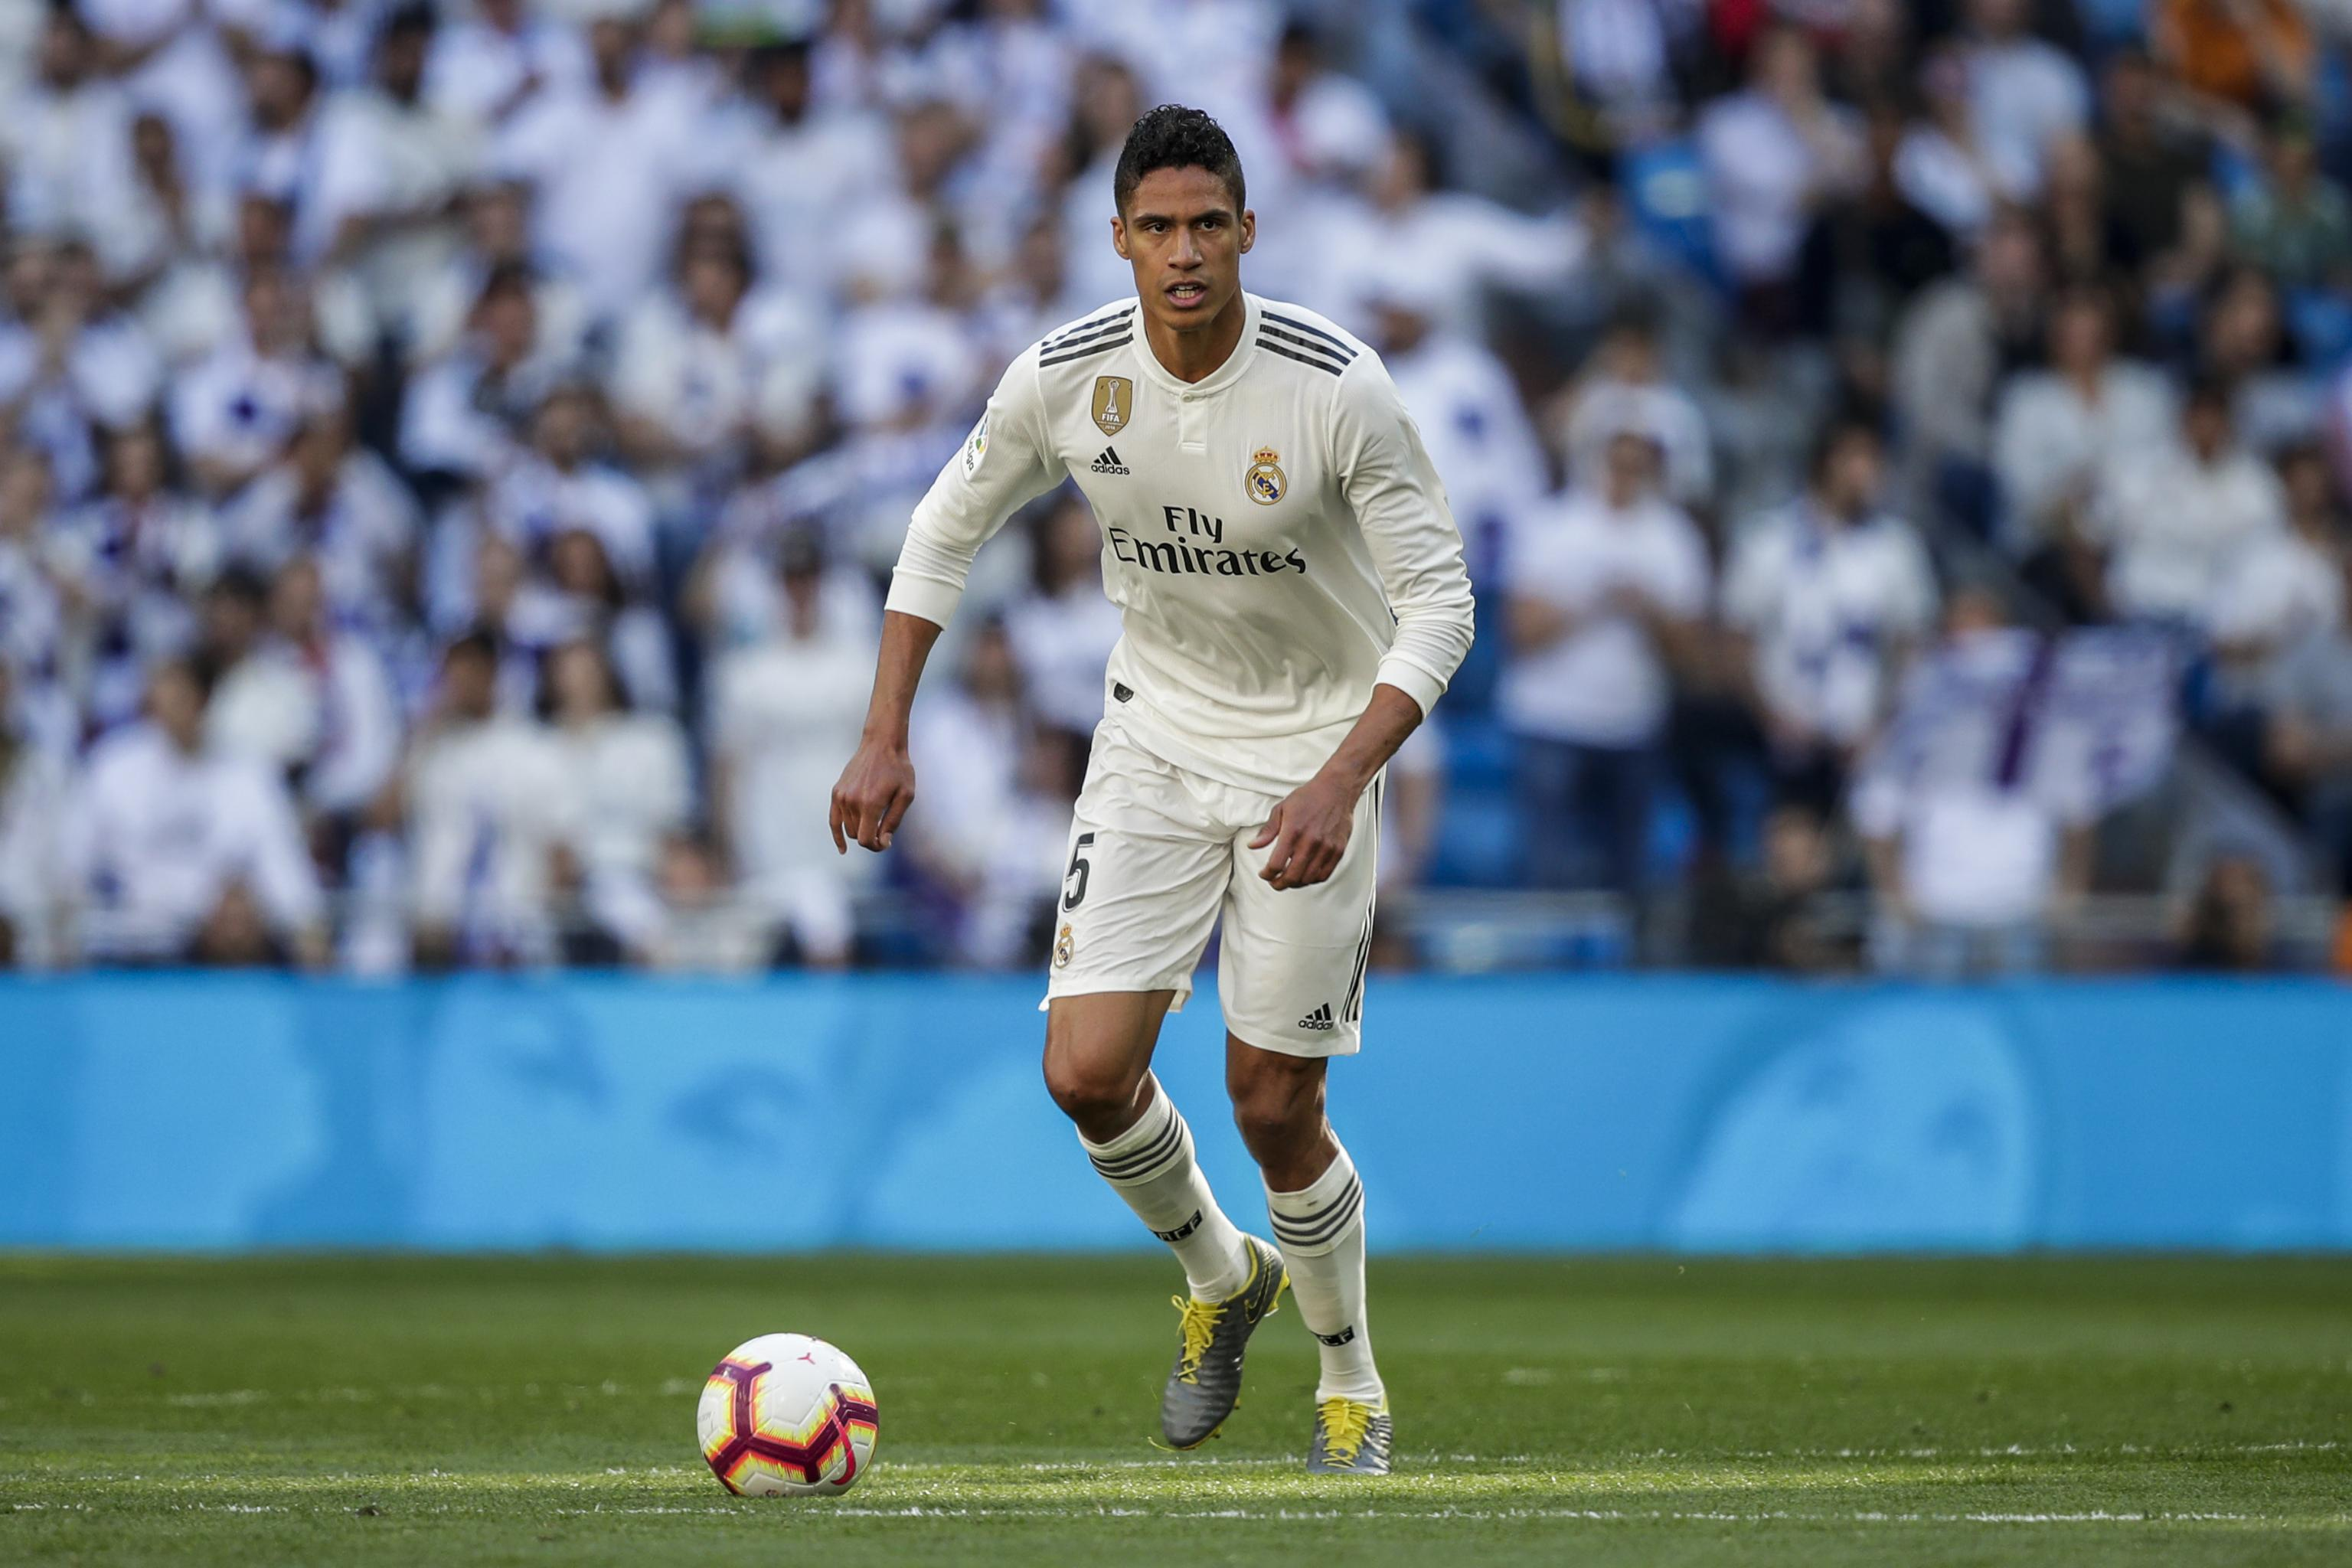 Raphael Varane Denies He Is Unhappy at Real Madrid Amid Transfer Rumours |  Bleacher Report | Latest News, Videos and Highlights